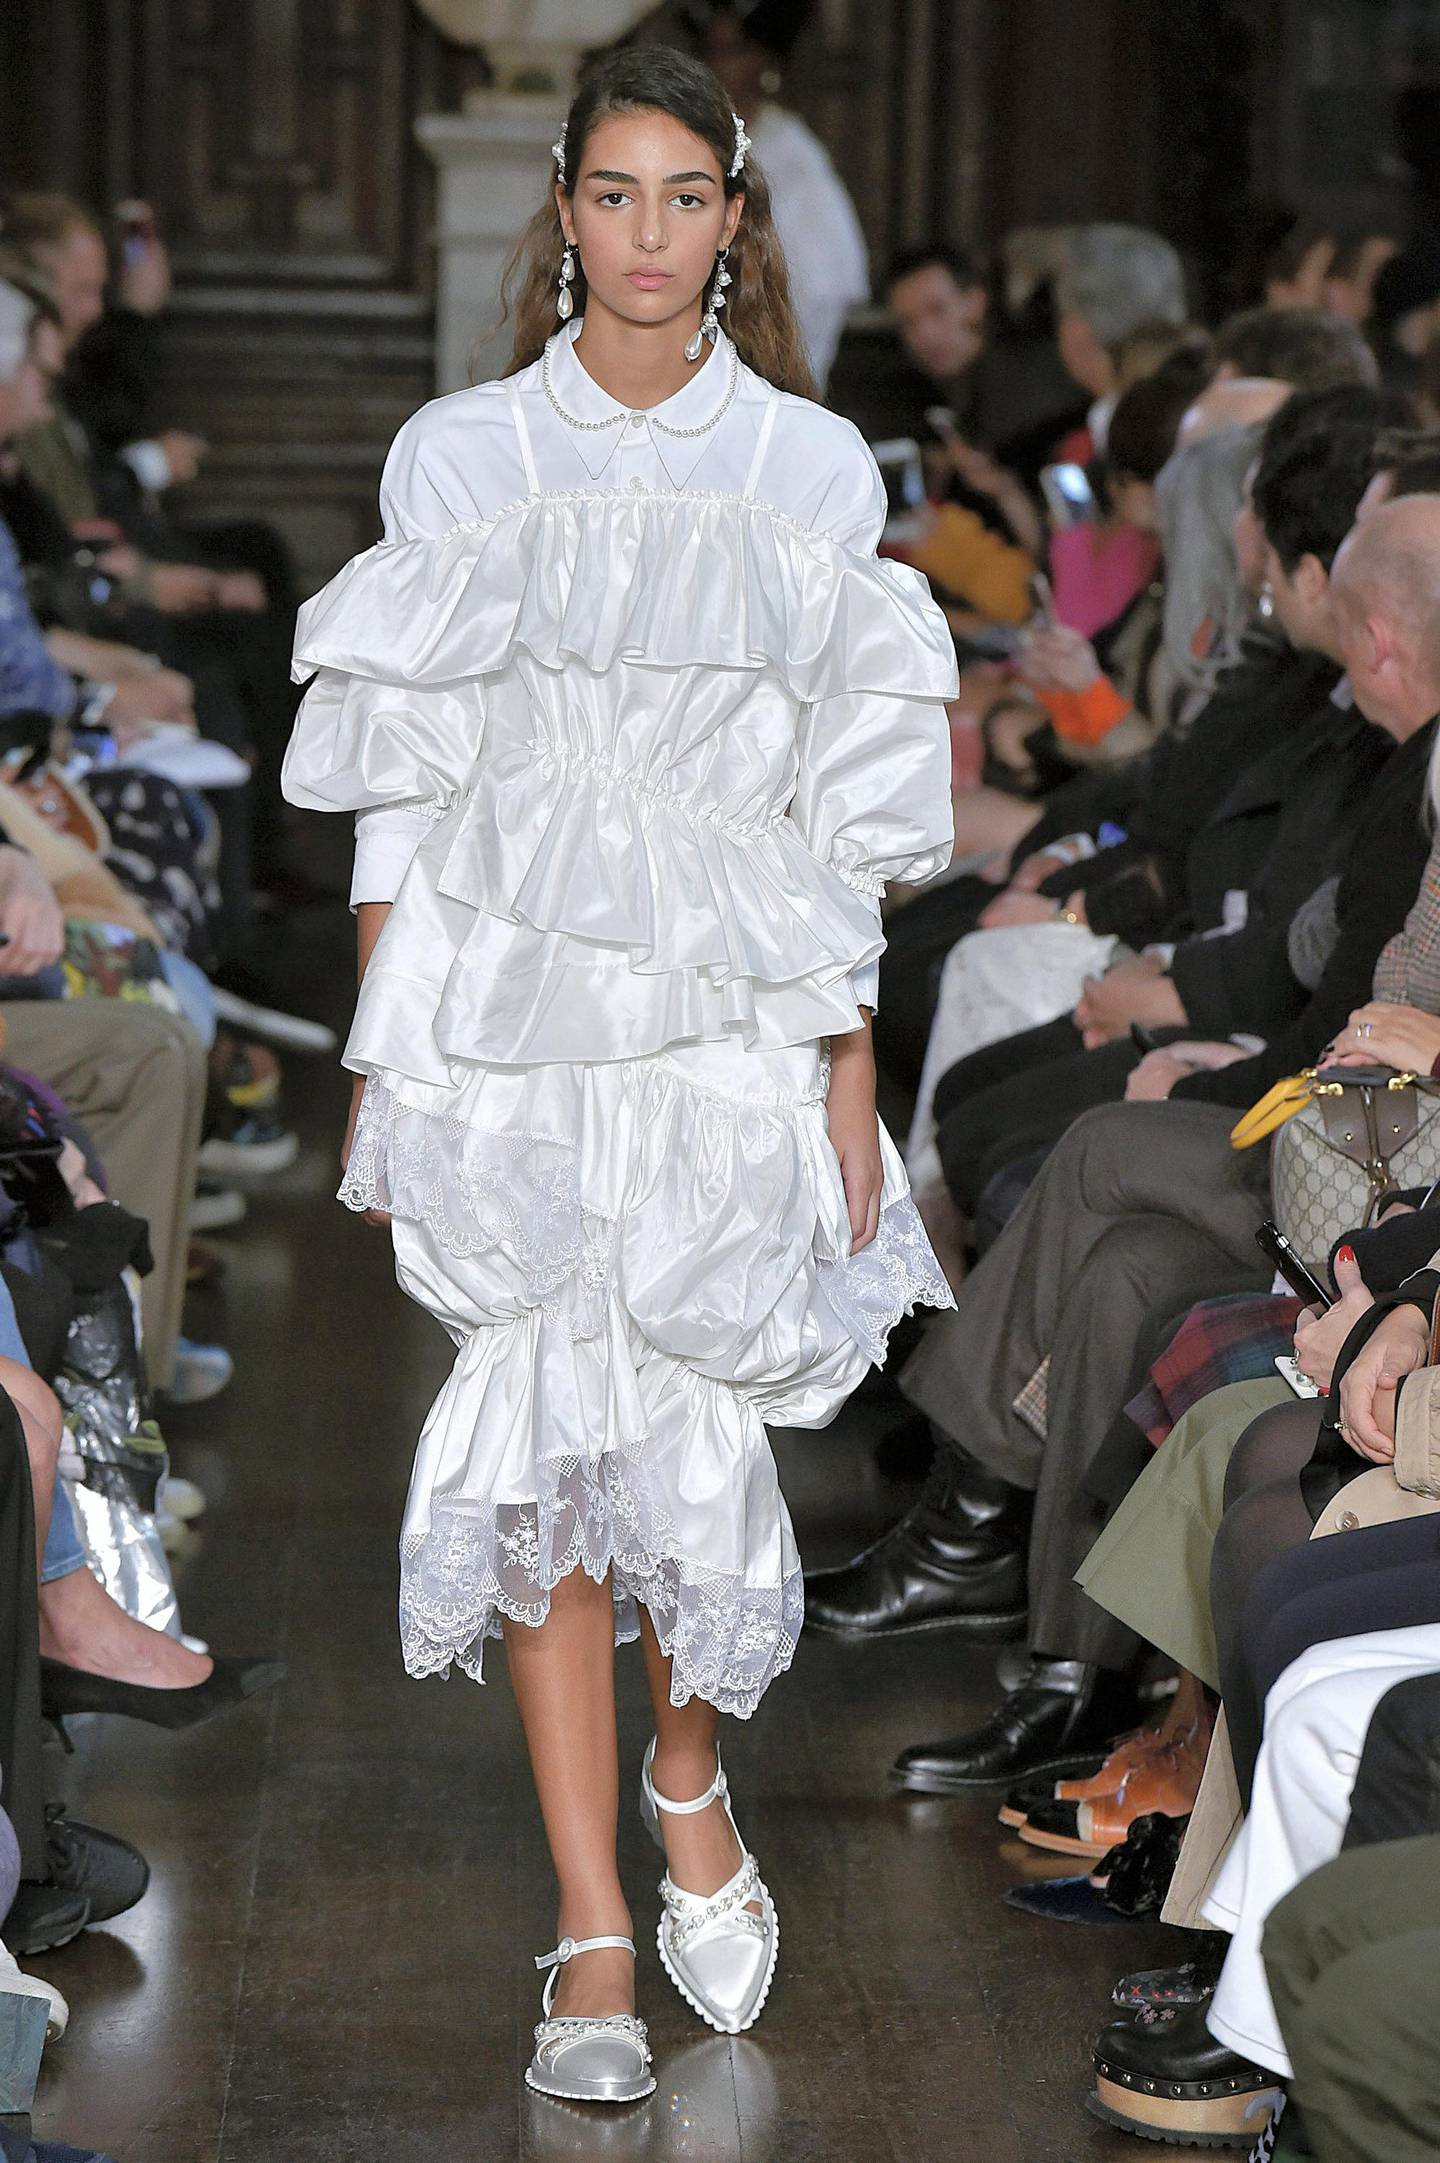 LONDON, ENGLAND - SEPTEMBER 16:  A model walks the runway at the Simone Rocha Spring Summer 2018 fashion show during London Fashion Week on September 16, 2017 in London, United Kingdom.  (Photo by Catwalking/Getty Images)